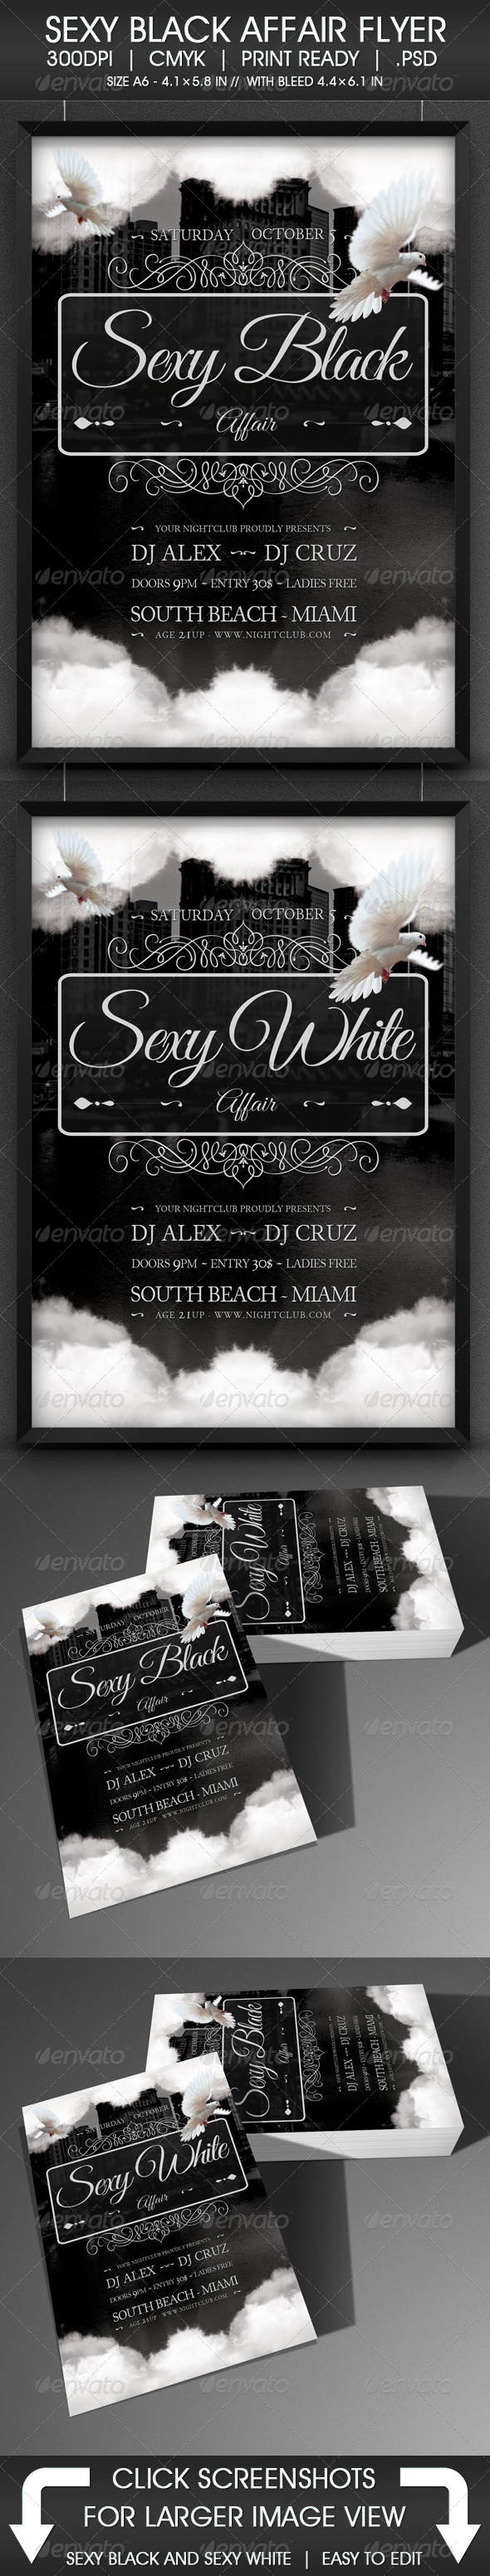 Sexy Black Affair Flyer - Events Flyers